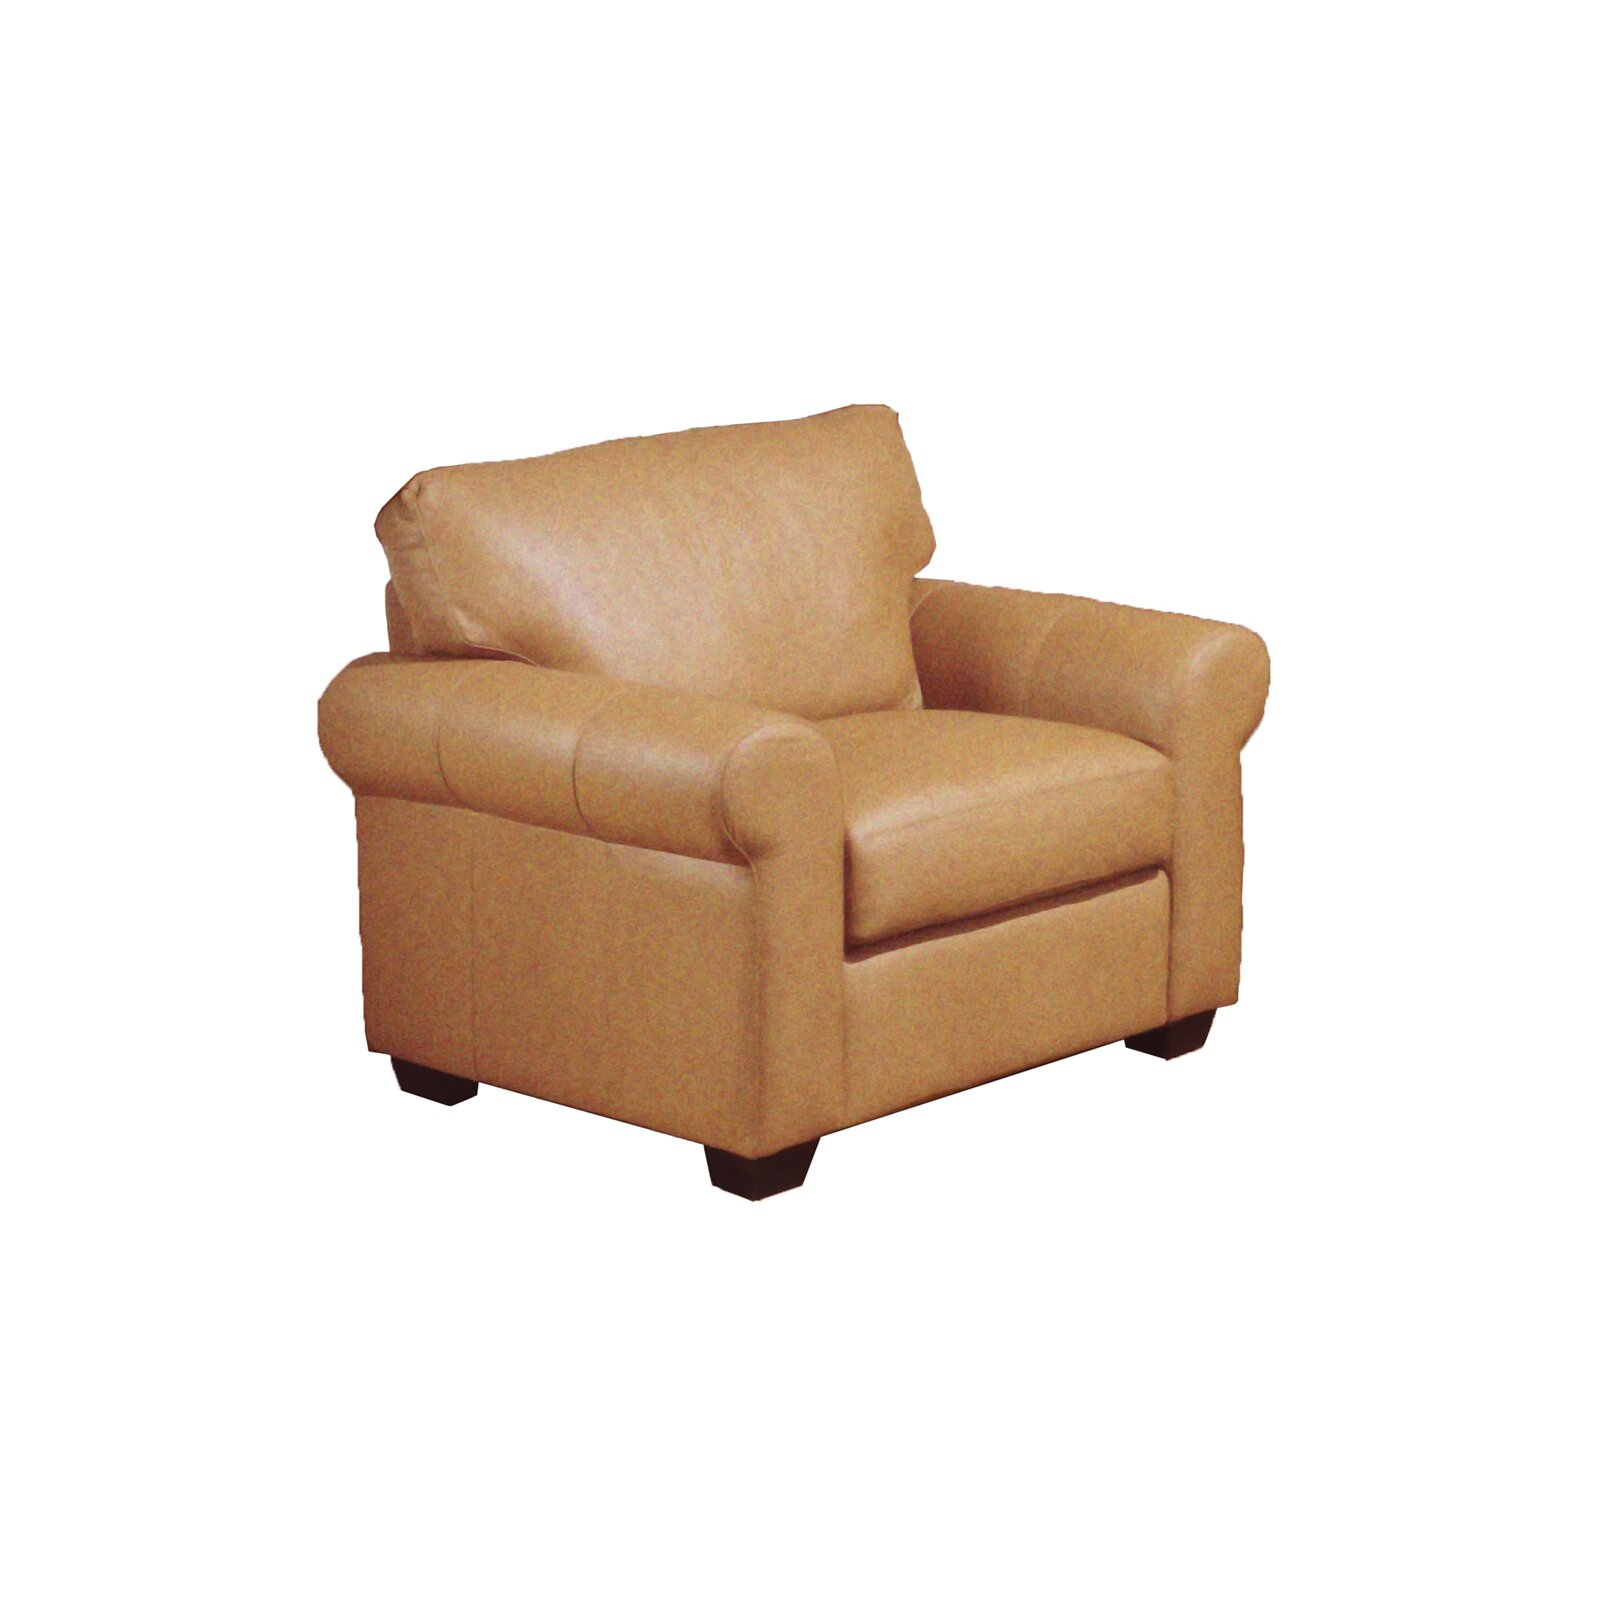 Omnia Leather West Point Leather Queen Sleeper Sofa Living Room Set